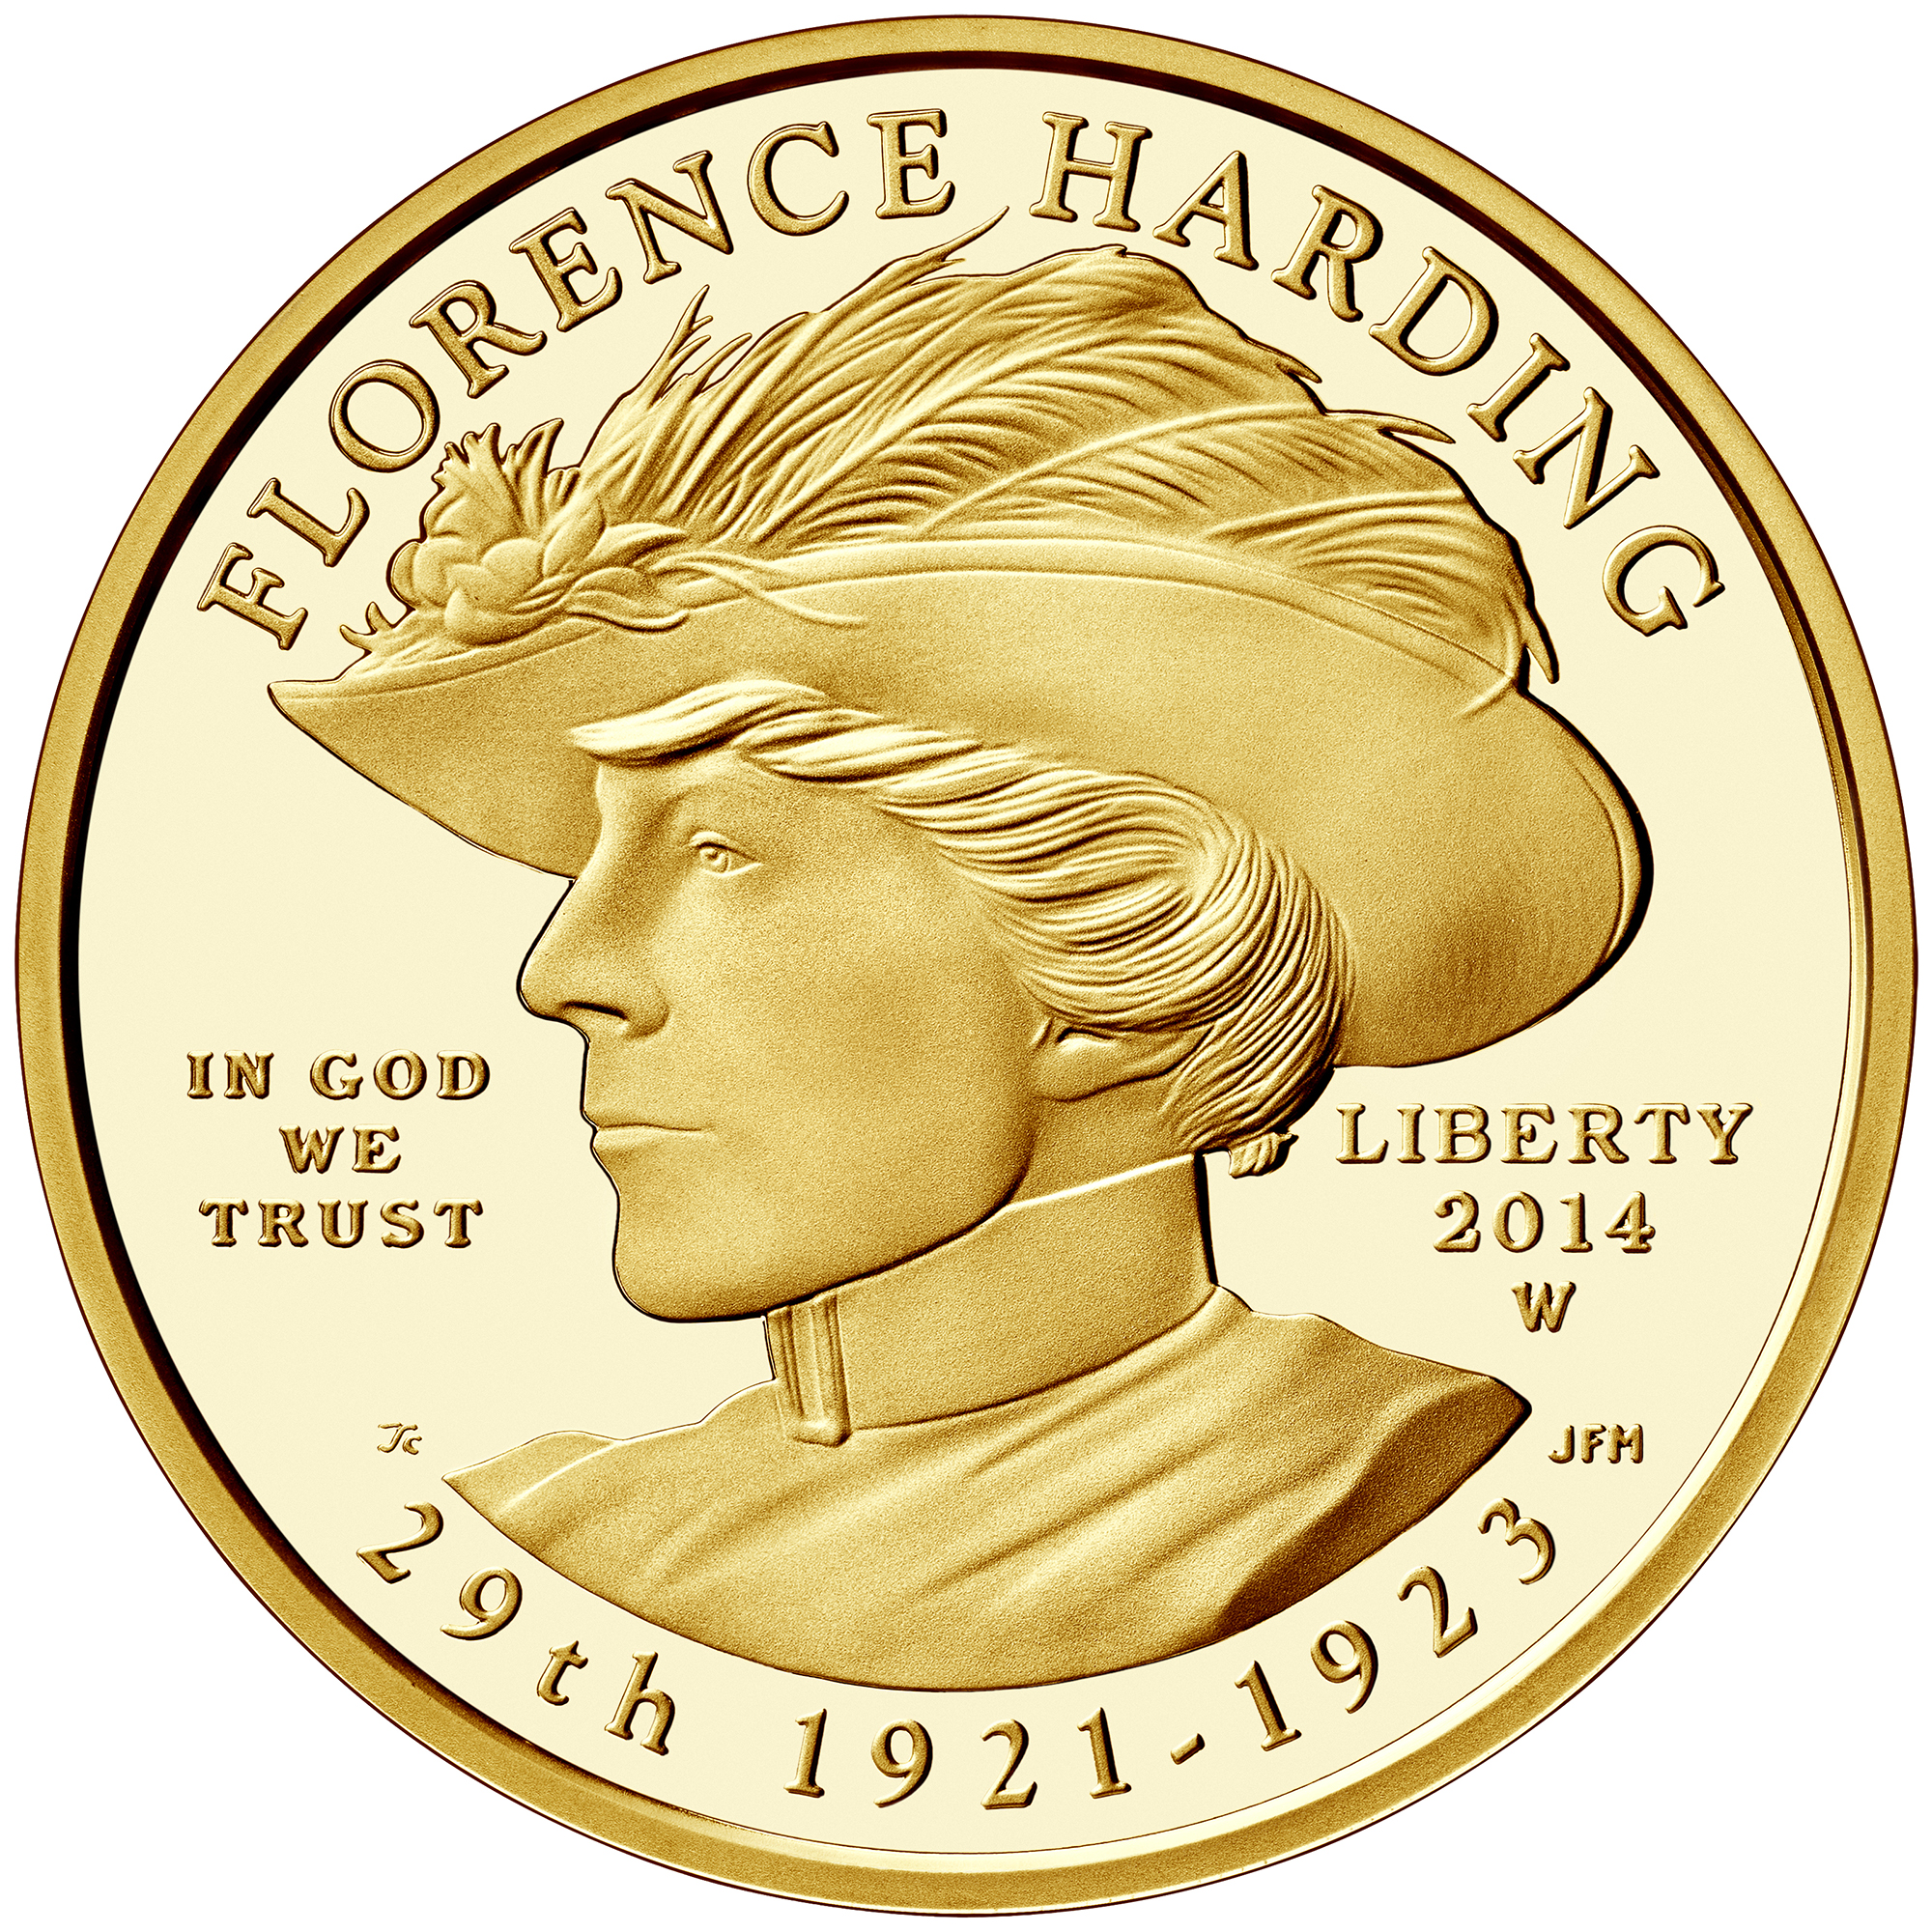 the harding trust The harding trust has distributable net income for the year of 200000 and no from tax 3000 at baruch college, cuny.